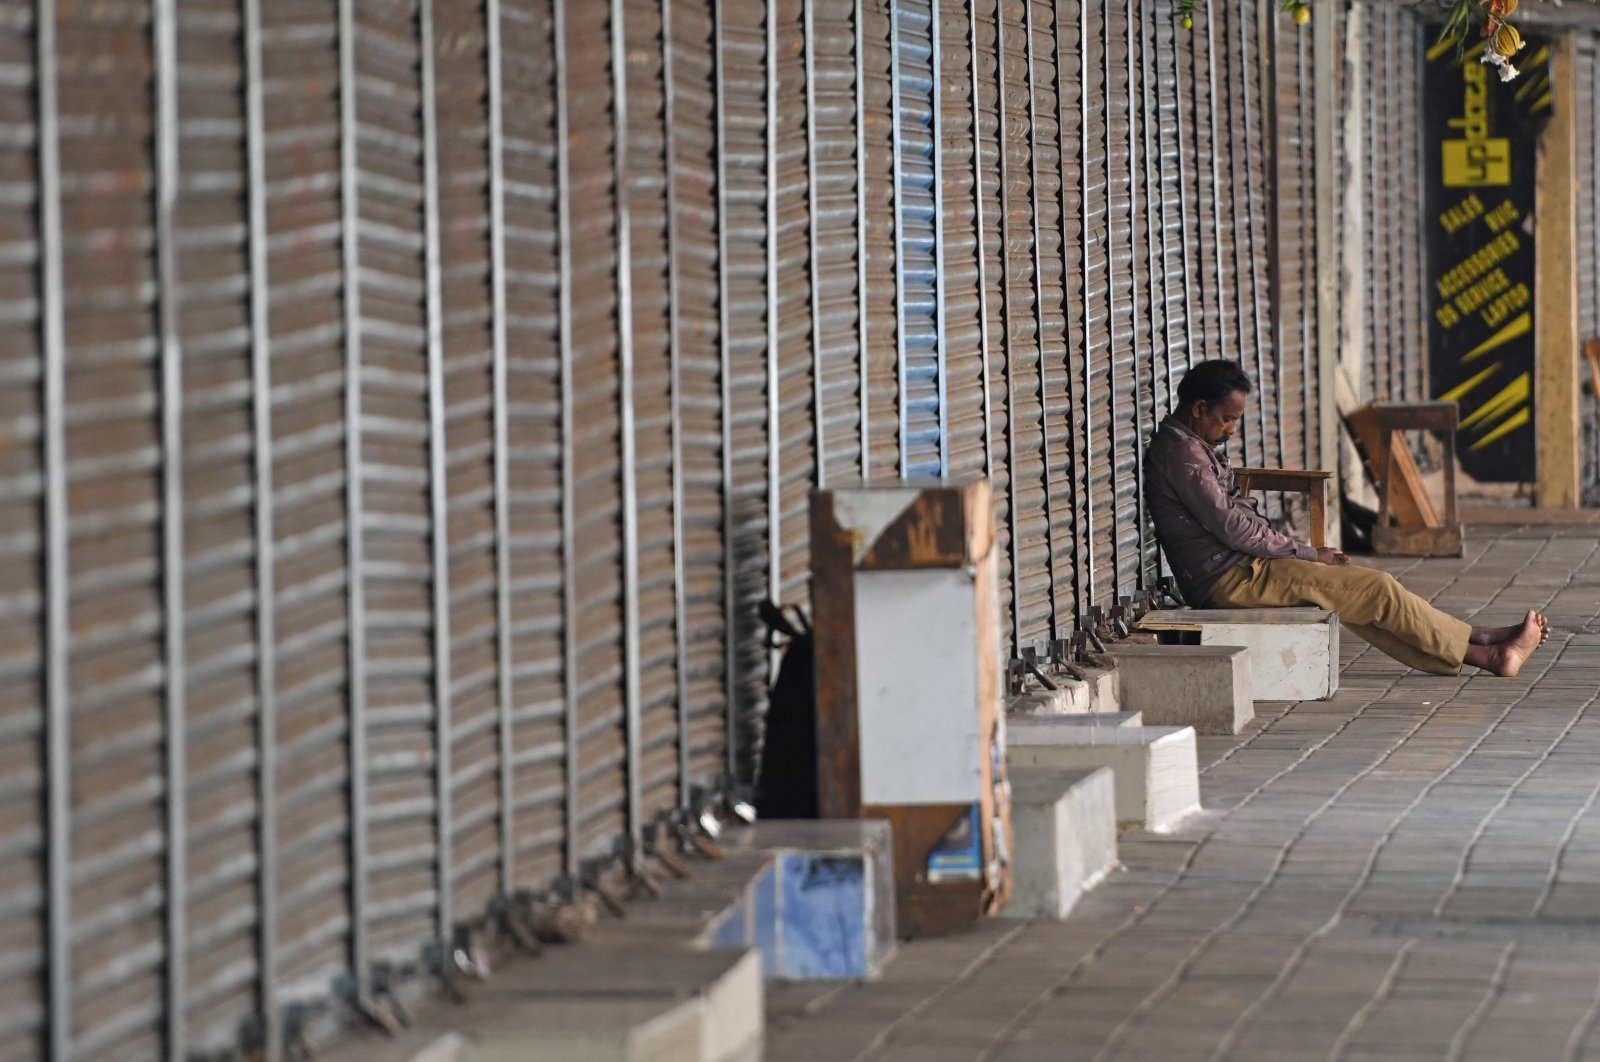 A man takes a nap amid closed shops during the Sunday lockdown imposed as a preventive measure against the spread of the COVID-19 coronavirus, Chennai, India, April 25, 2021. (AFP Photo)